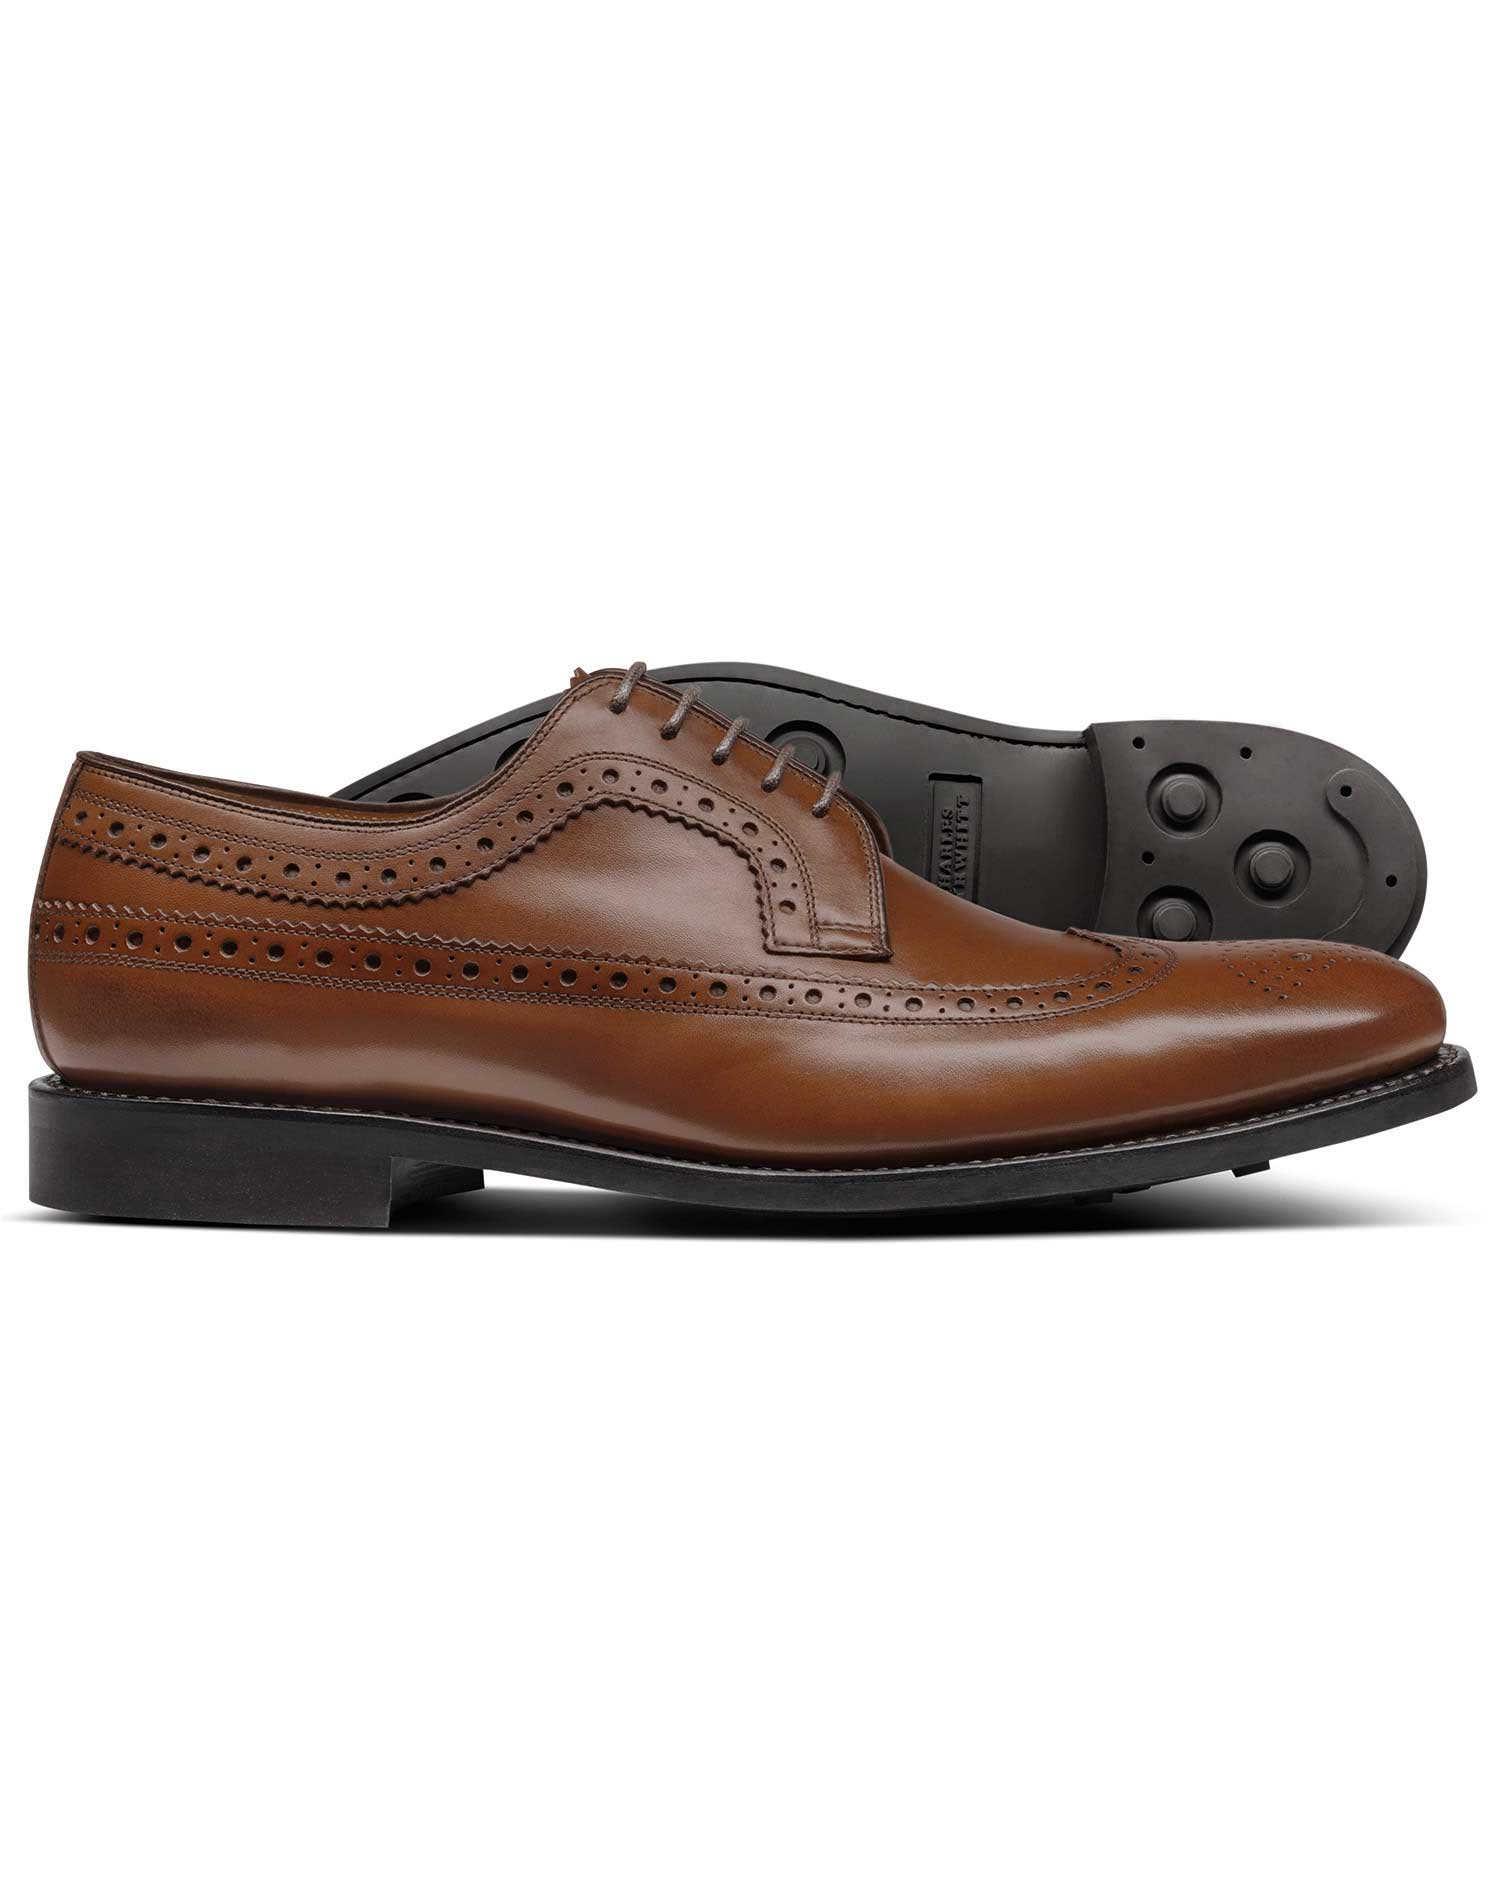 3090d8c890b Chestnut Goodyear welted Derby wing tip brogue shoes